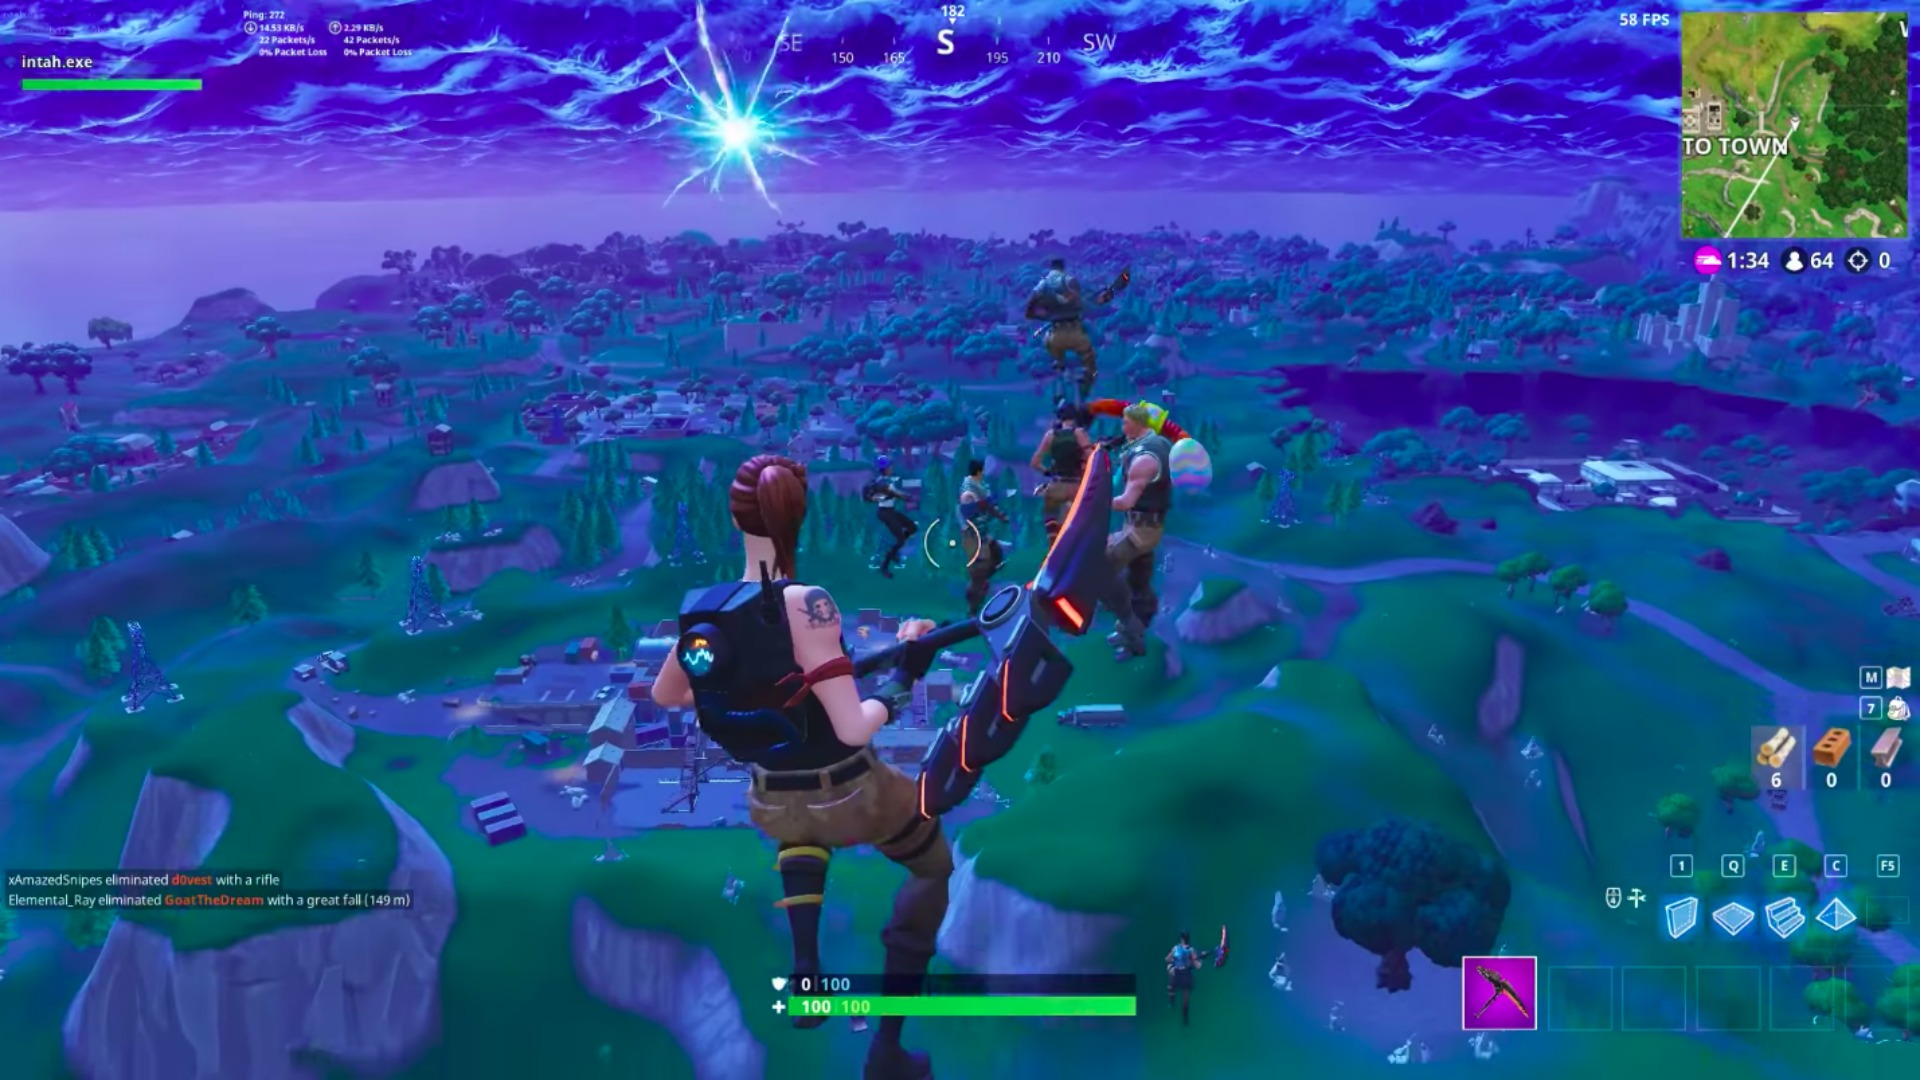 Fortnite Event A Rascal Exploited The Wonder Of The Players To Kill